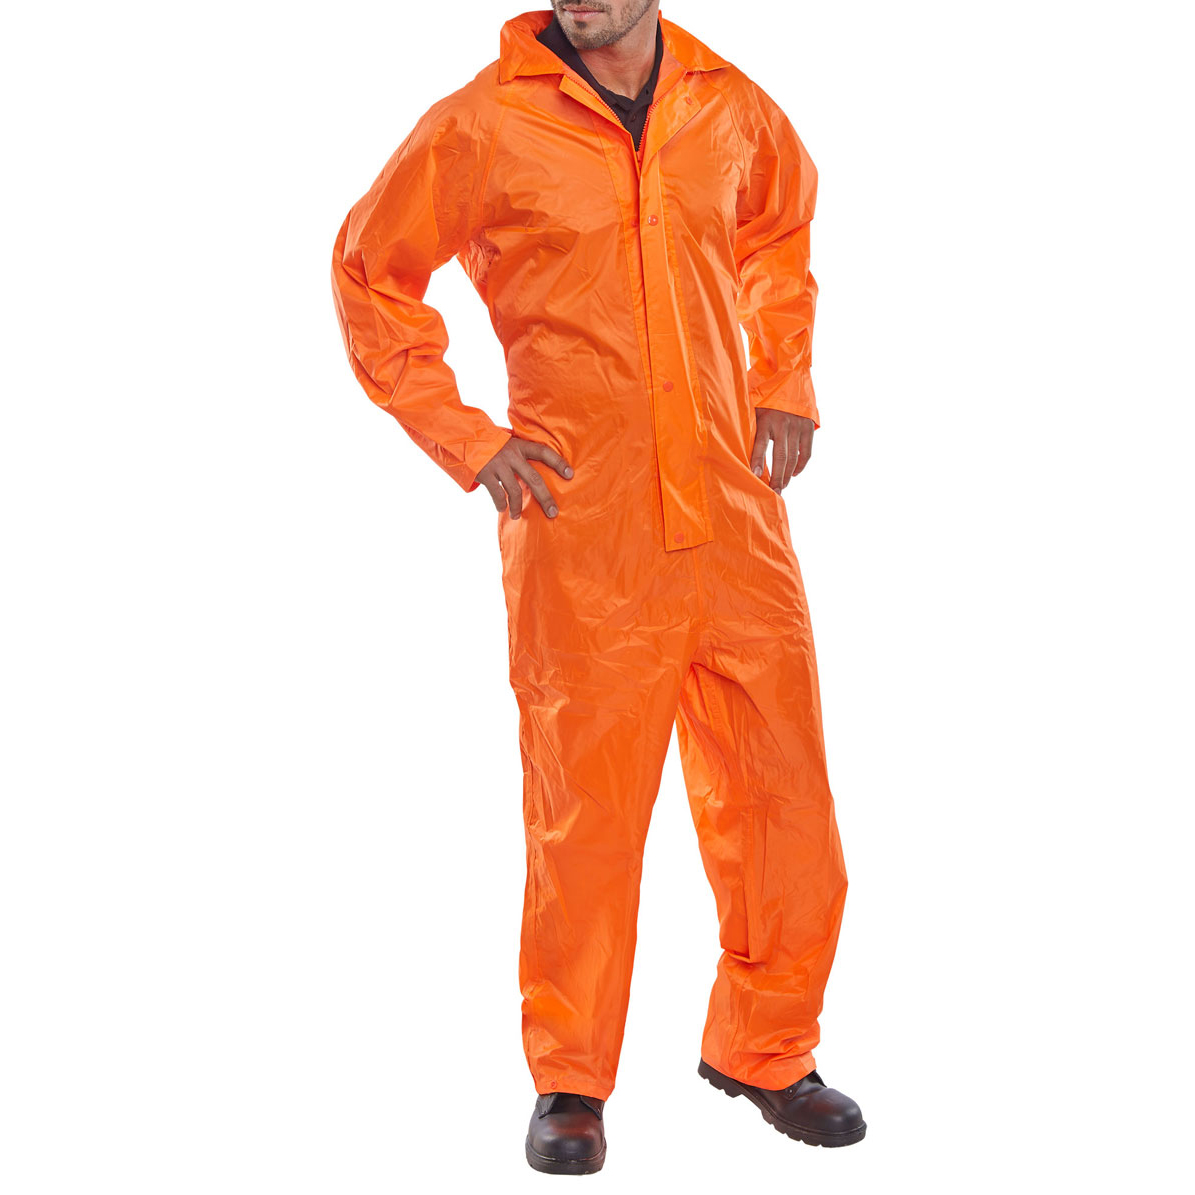 B-Dri Weatherproof Coveralls Nylon XL Orange Ref NBDCORXL *Up to 3 Day Leadtime*